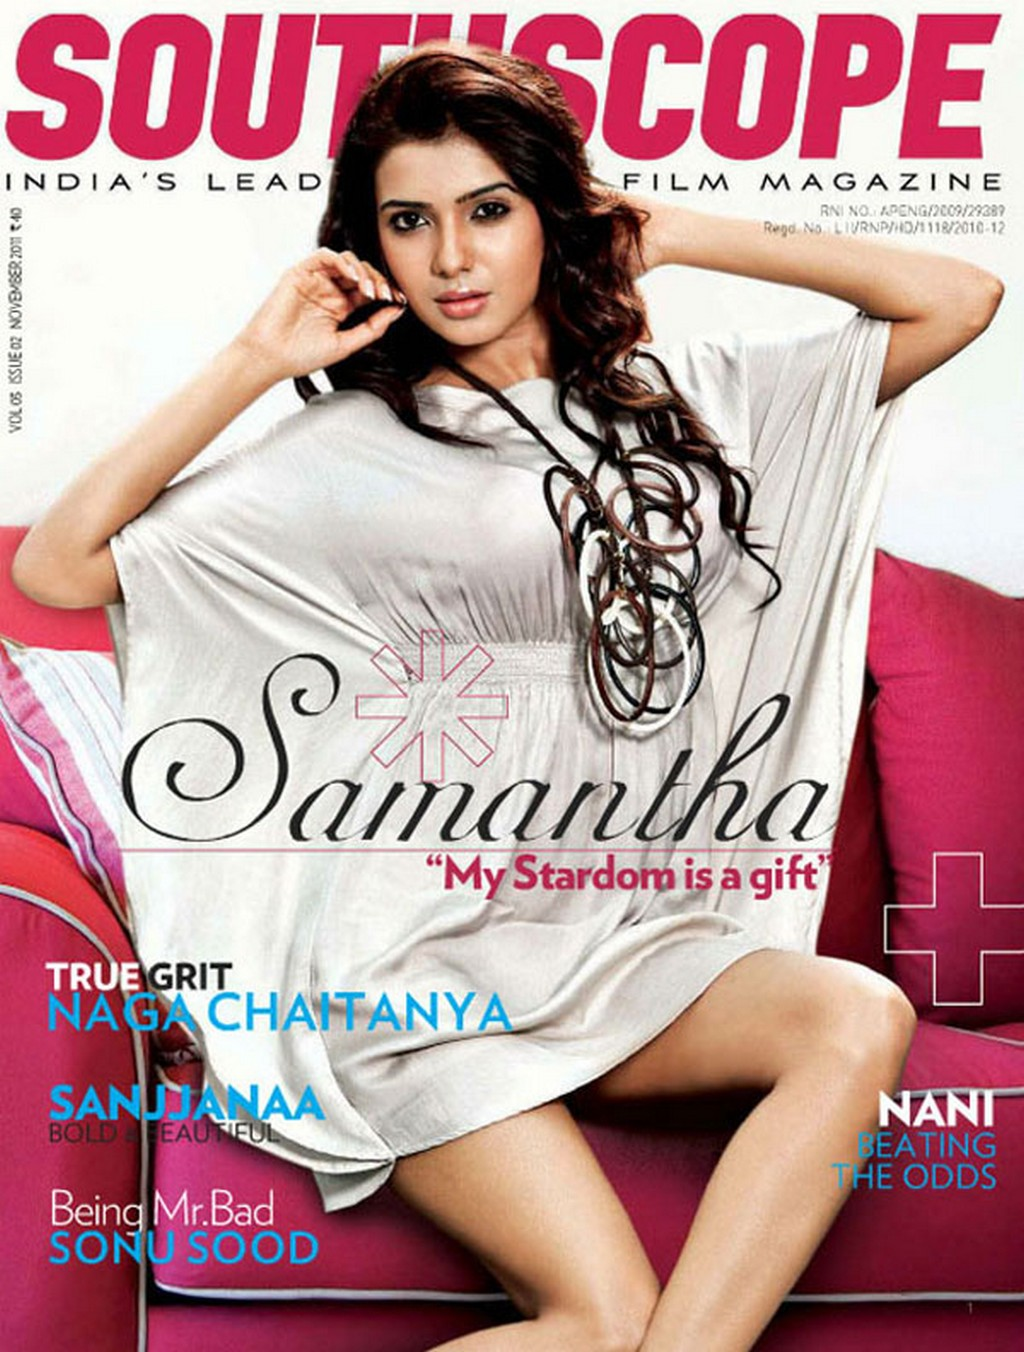 actress gallery samantha at south scope magazine. Black Bedroom Furniture Sets. Home Design Ideas